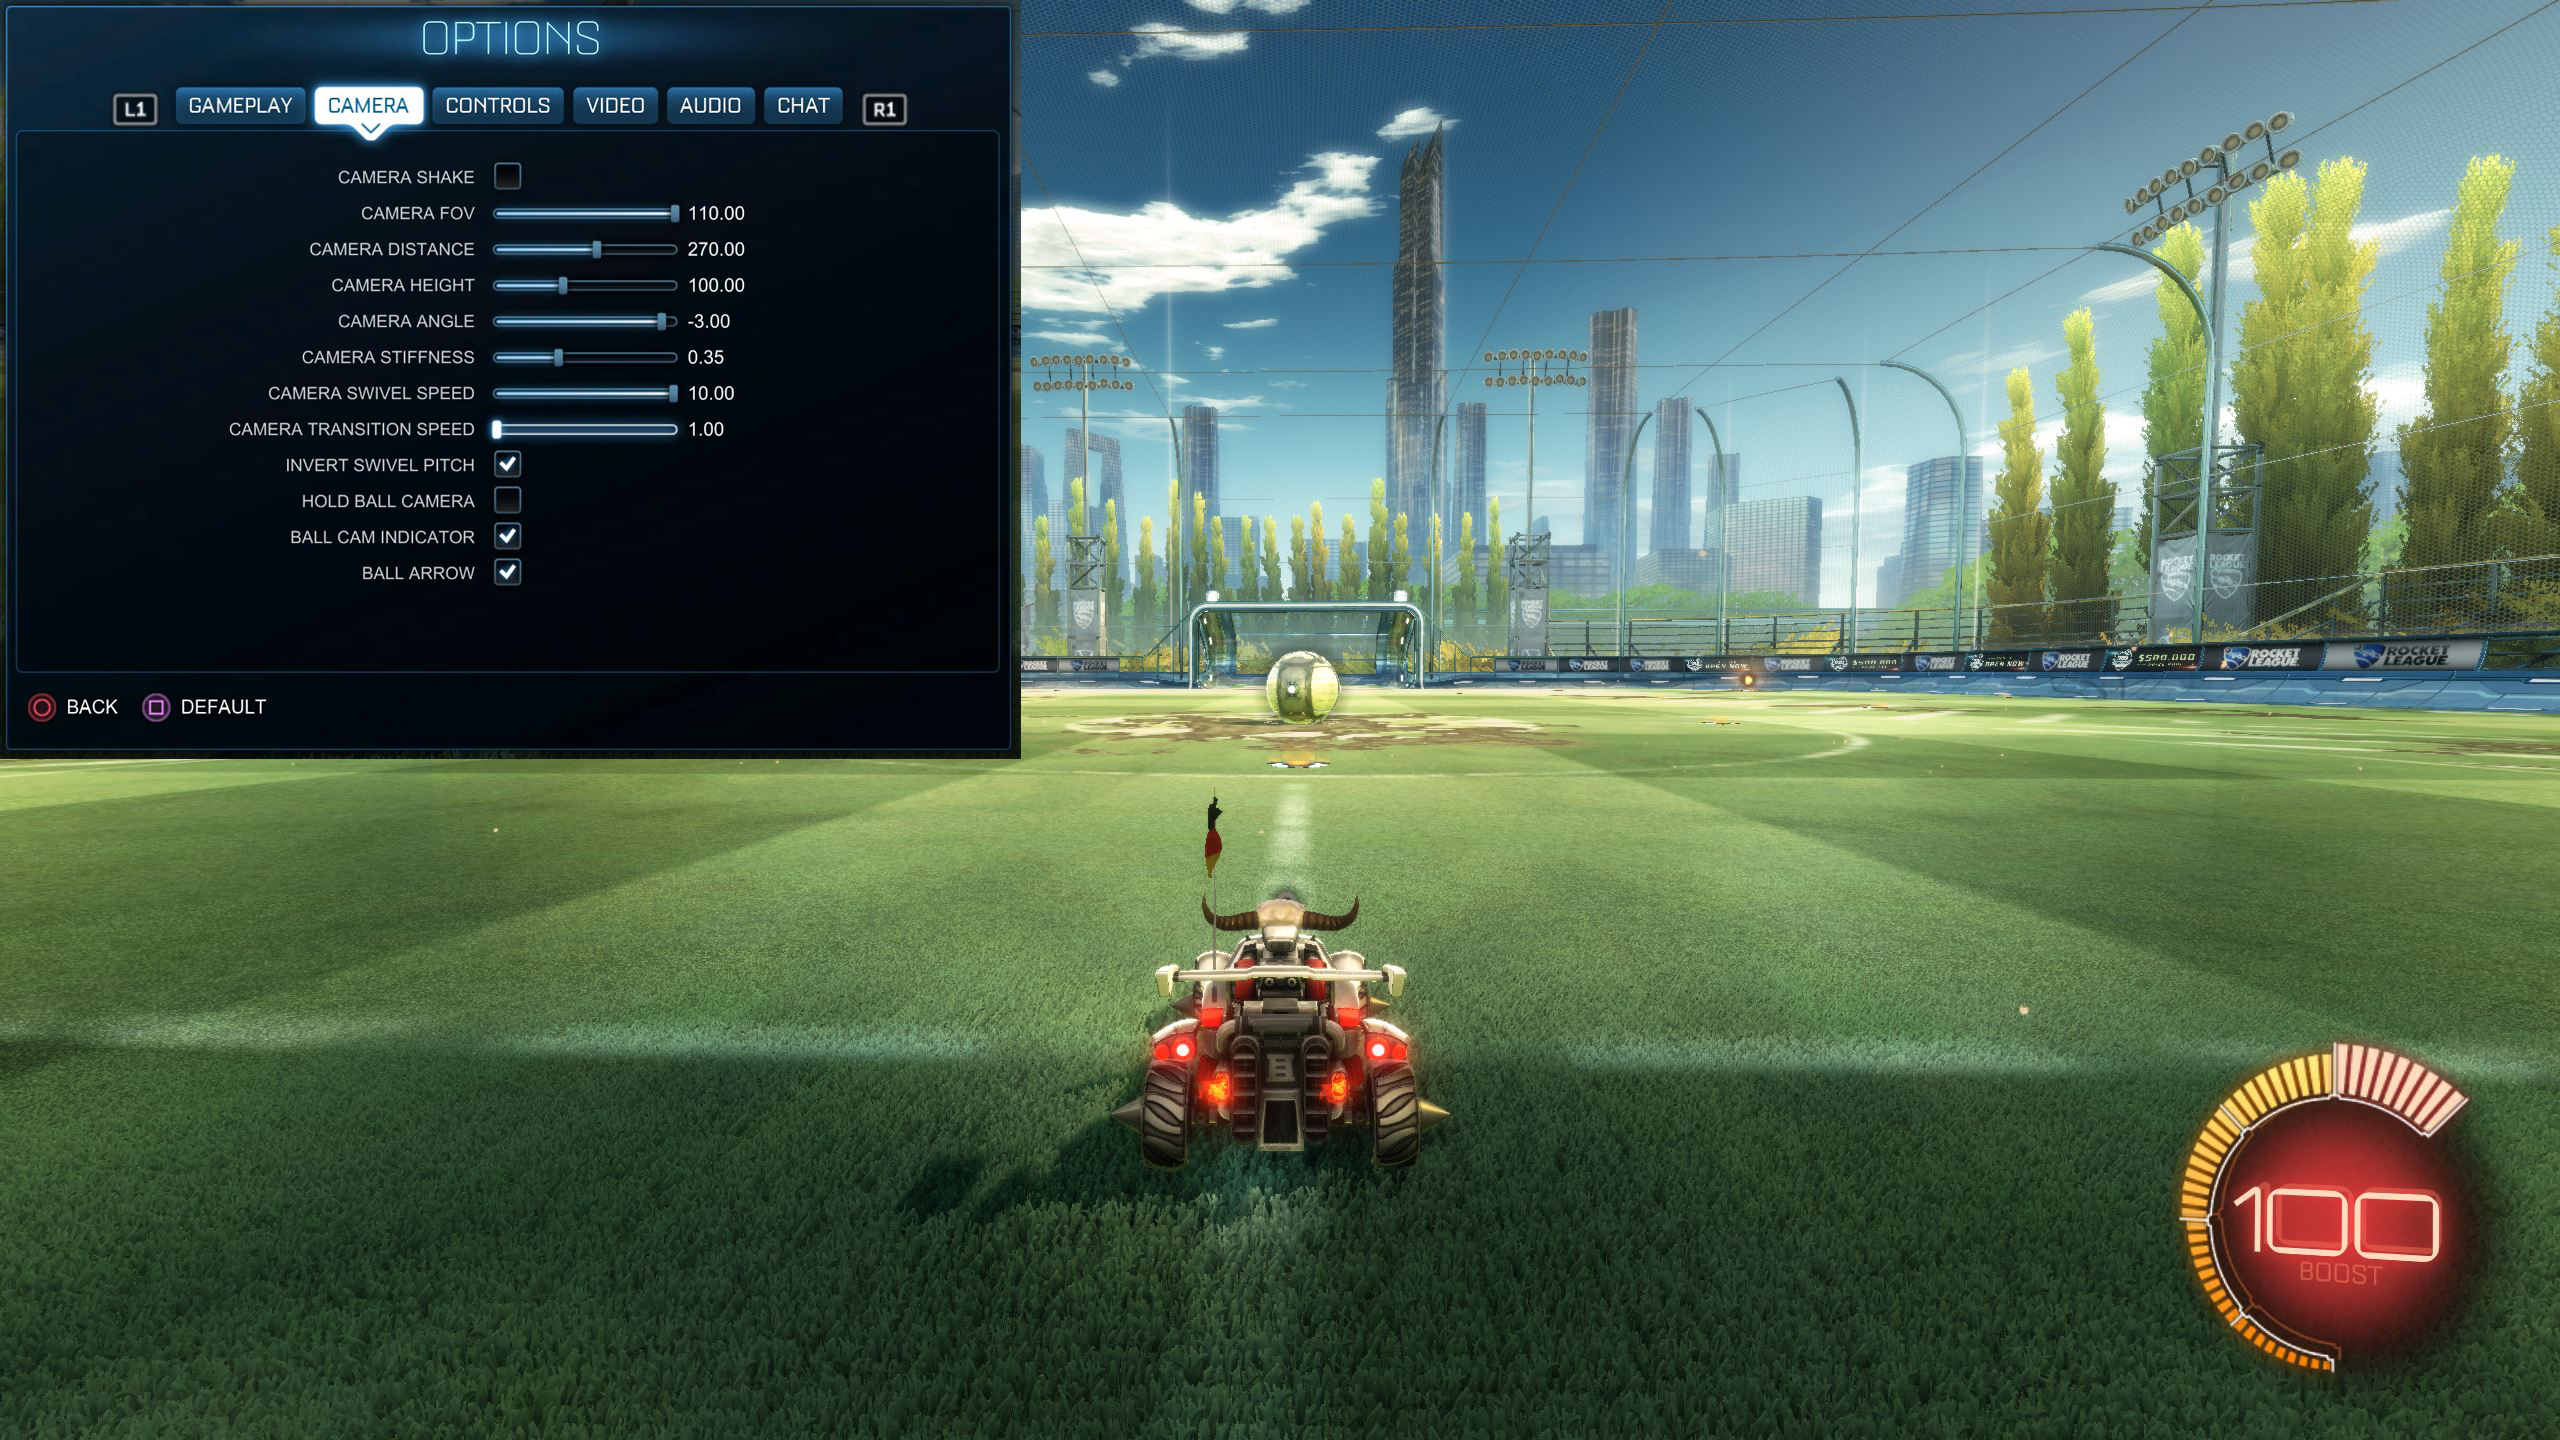 Rocket League Camera Settings Fairy Peak